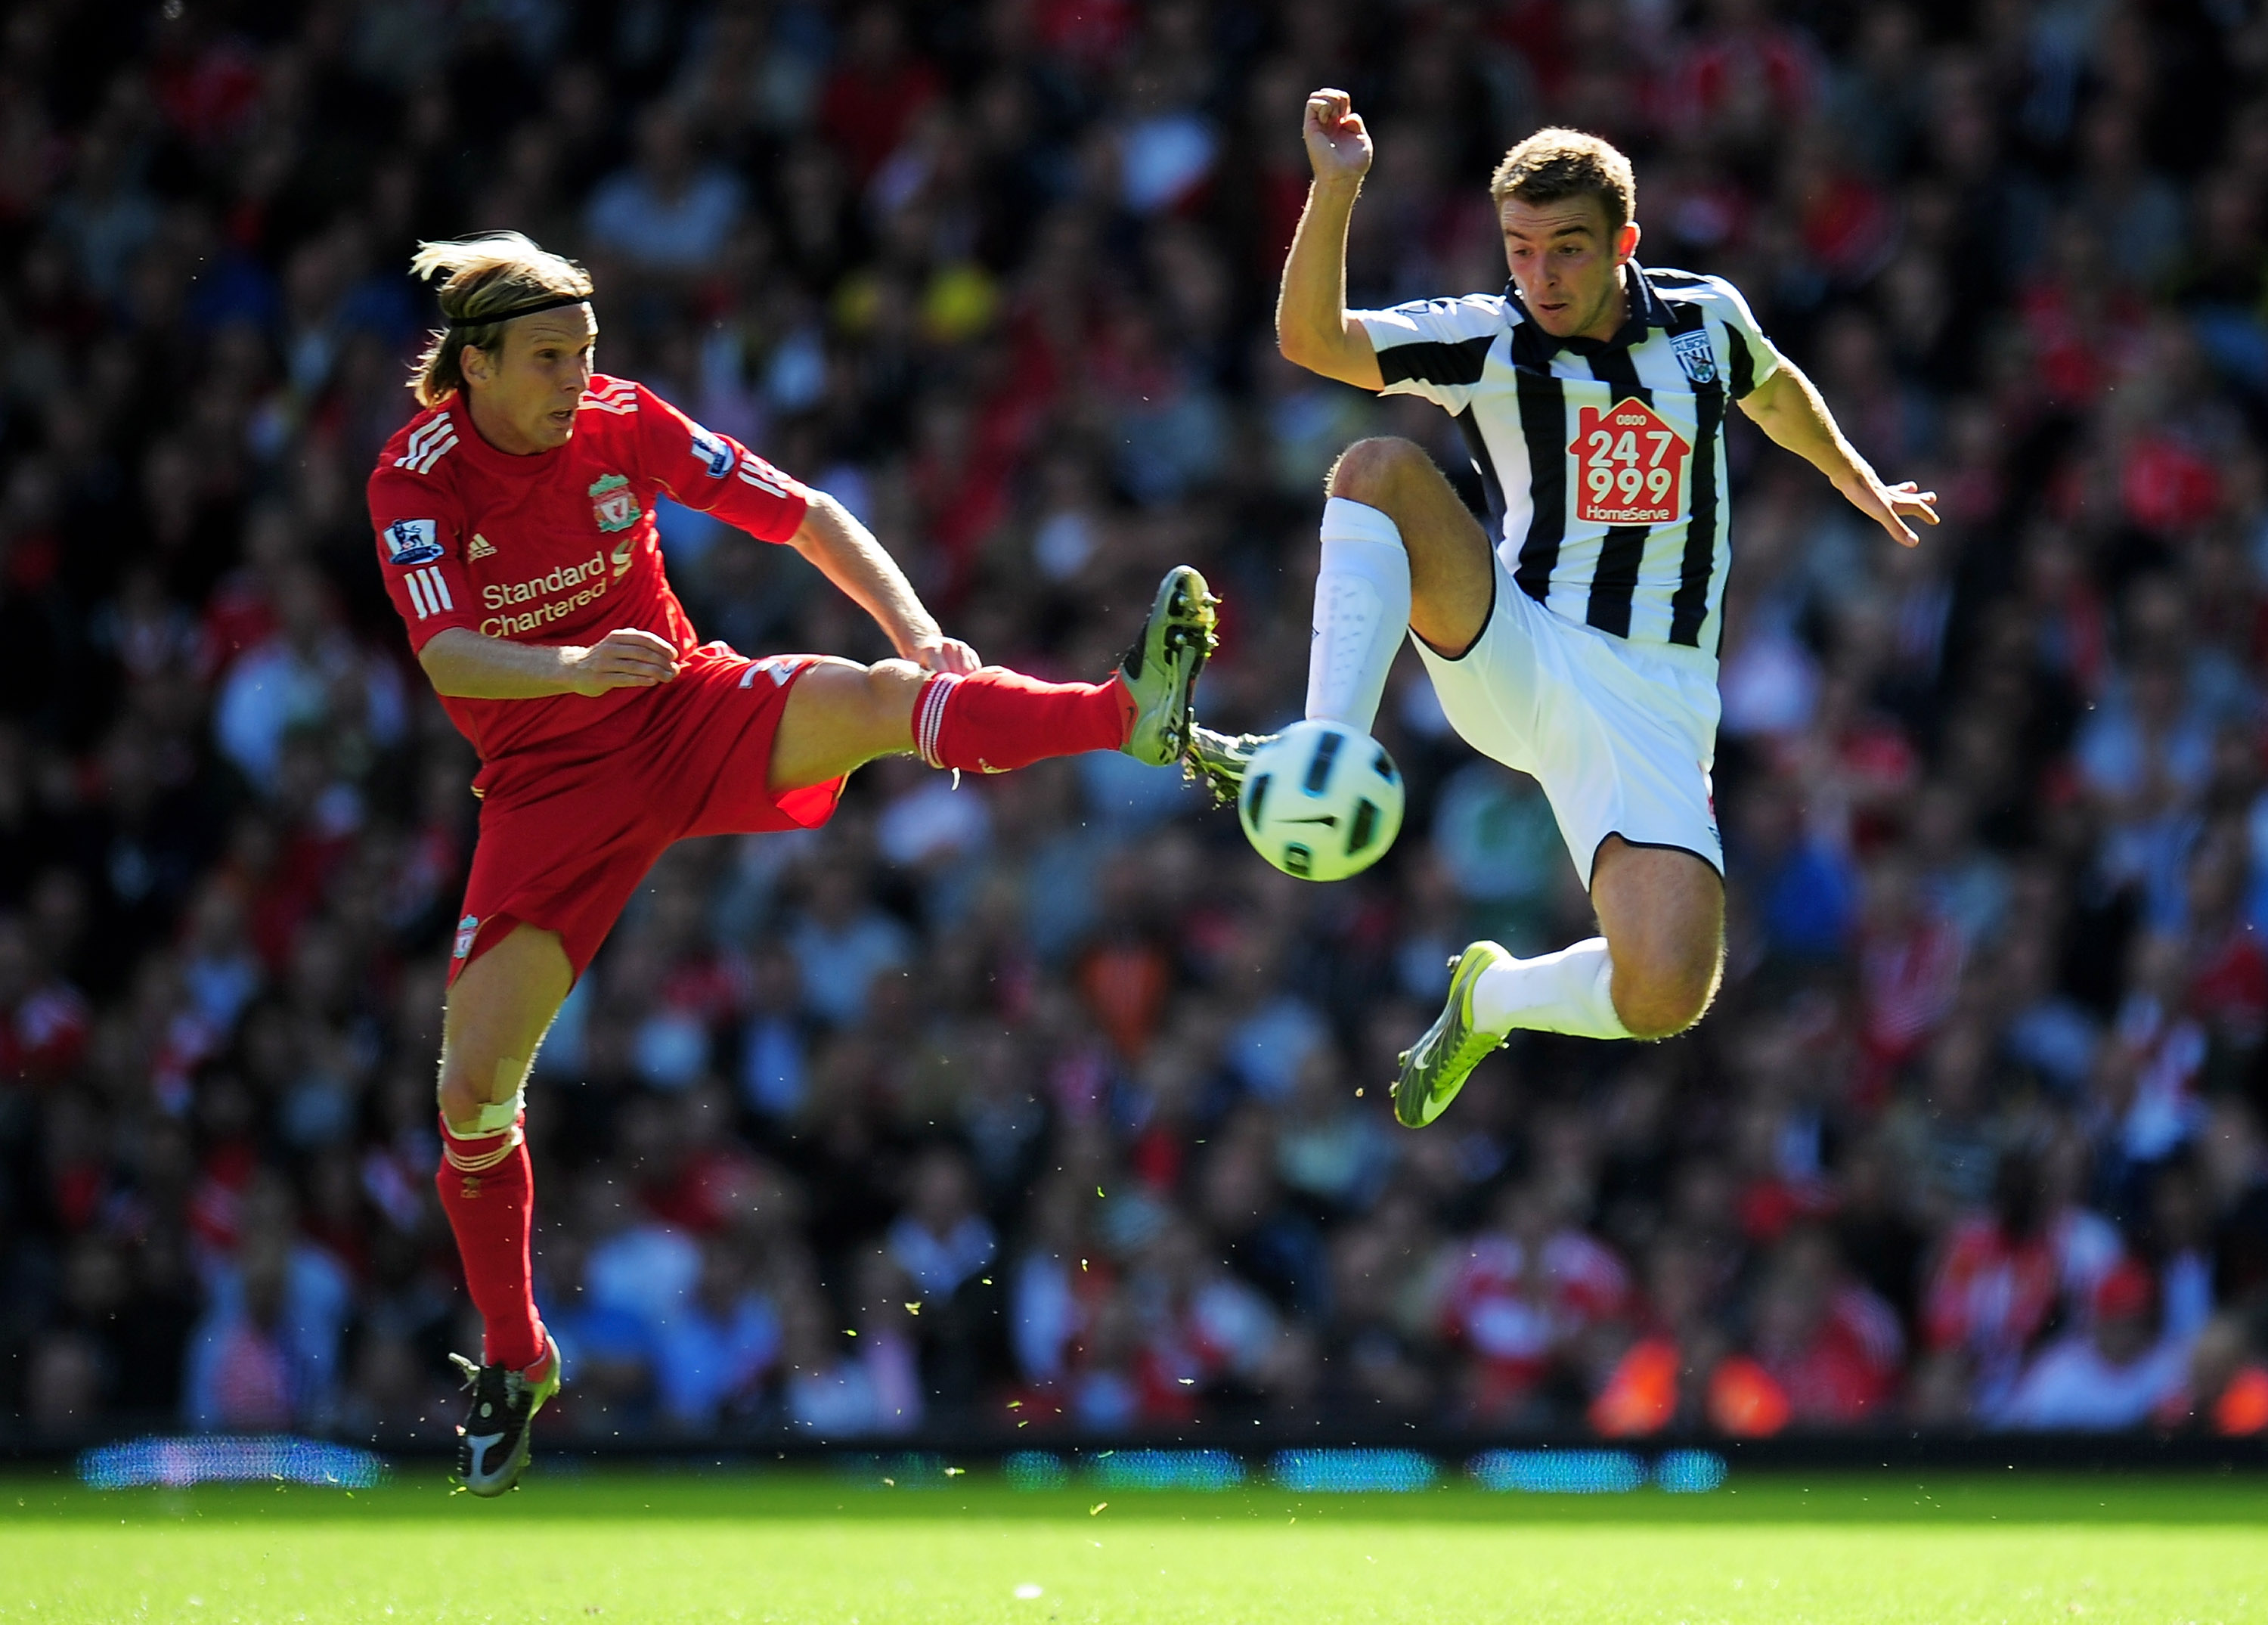 LIVERPOOL, ENGLAND - AUGUST 29:  James Morrison of West Bromwich Albion is challenged by Christian Poulsen of Liverpool during the Barclays Premier League match between Liverpool and West Bromwich Albion at Anfield on August 29, 2010 in Liverpool, England